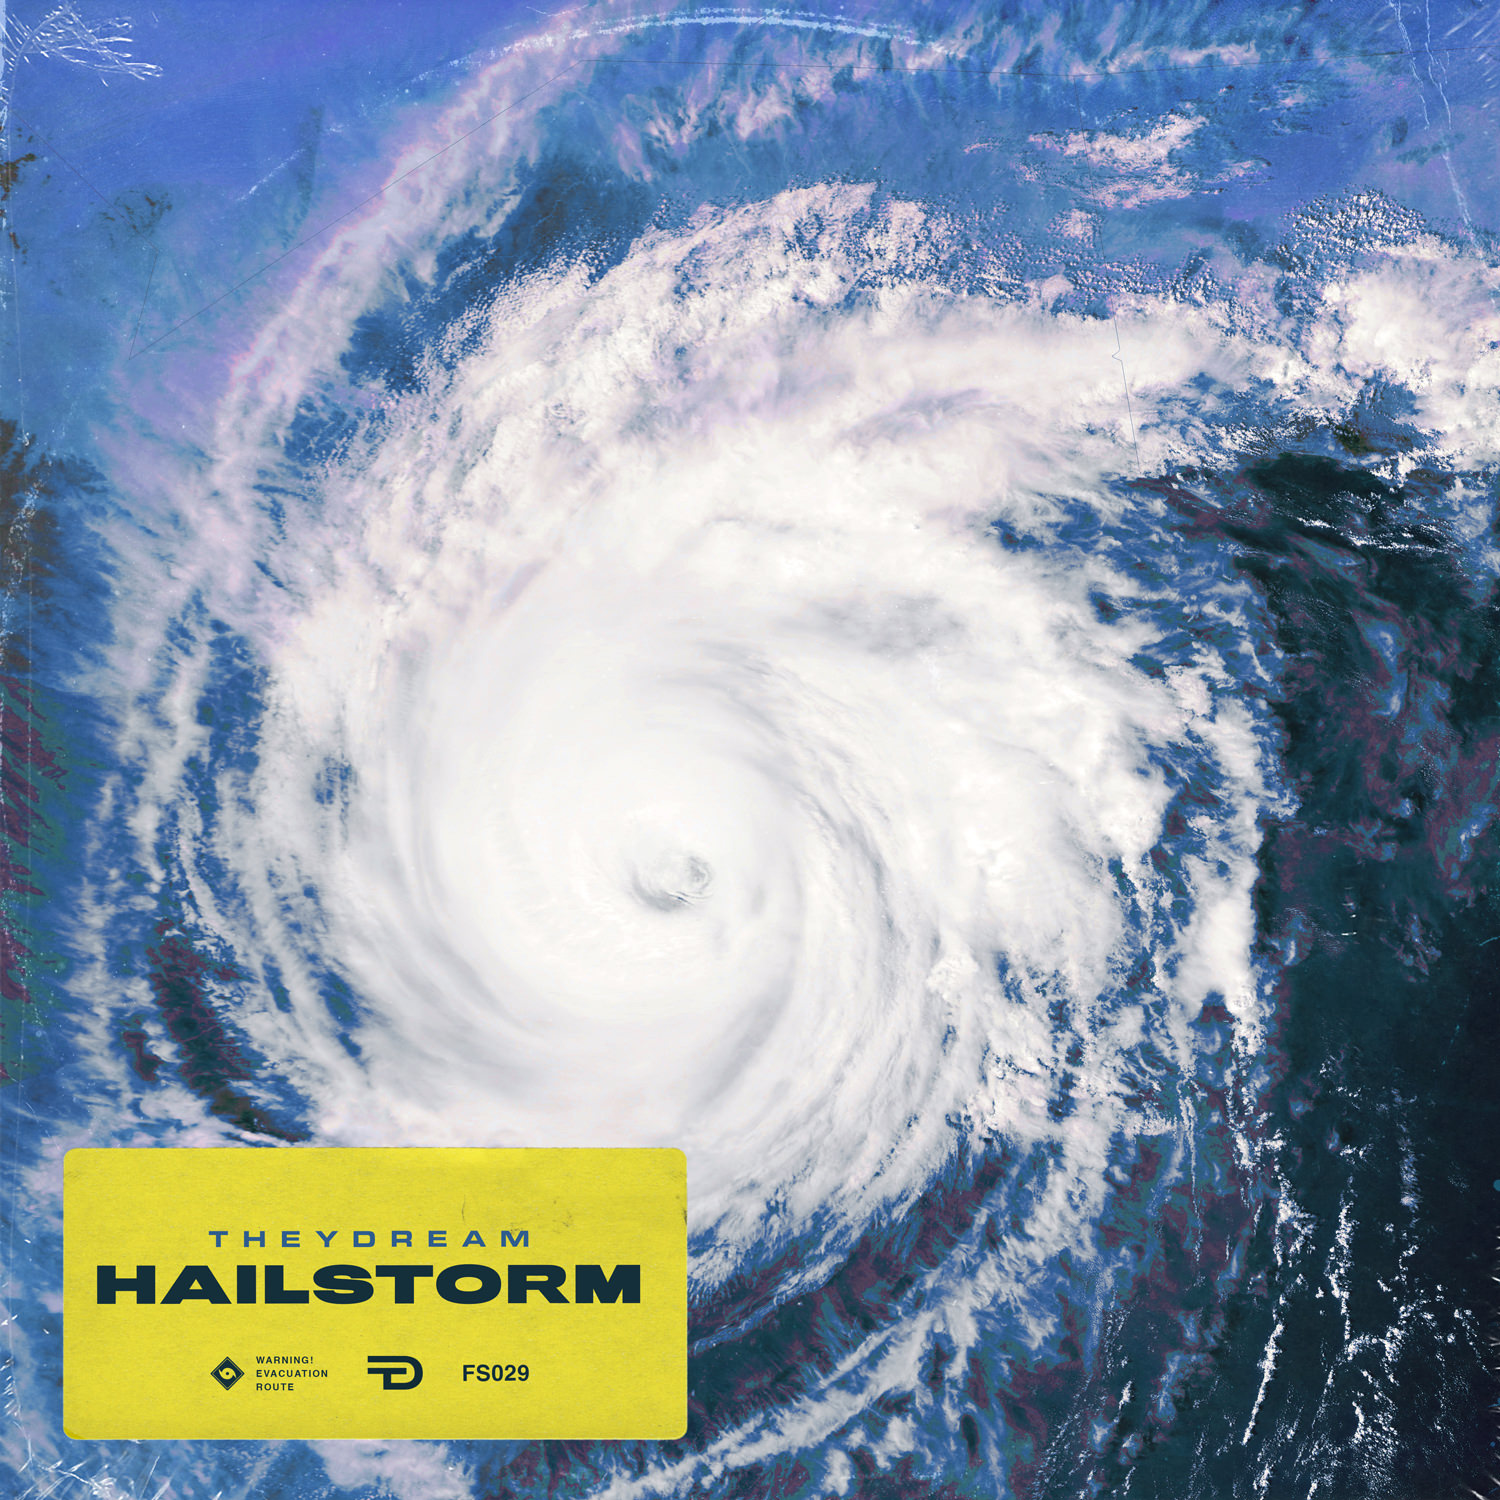 HAILSTORM - THEYDREAMCommunicating through music is what Theydream really seem to have a knack for. We can pretty much guarantee that you won't see the guys throwing any kind of sweet pastries into the audience nor swimming through a crowd on a yellow rubber boat in the future. Instead these likeable and passionate musicheads focus on steadily building and expanding their promising career. Next step on the ladder: their new EP 'Hailstorm'.The A-side - 'Hailstorm' - is a mystical and atmospheric ride through the trancelike state of mind. Captivating, intoxicating, patient... the track brings forward tons of attributes and associations thanks to its complexity and depth.With 'Sunday Aftermath' Theydream lives up to the huge reputation but also expectations that come with success. Equally thoughtful and deep, yet slightly more melodic and certainly as persuasive as the A-side, this track is a beauty and we're proud of incorporating the full EP in our FCKNG SERIOUS catalogue.Eyes open and ears even more open for our talented and humble friends from Switzerland.__Spotify soon…Apple music soon…Beatport